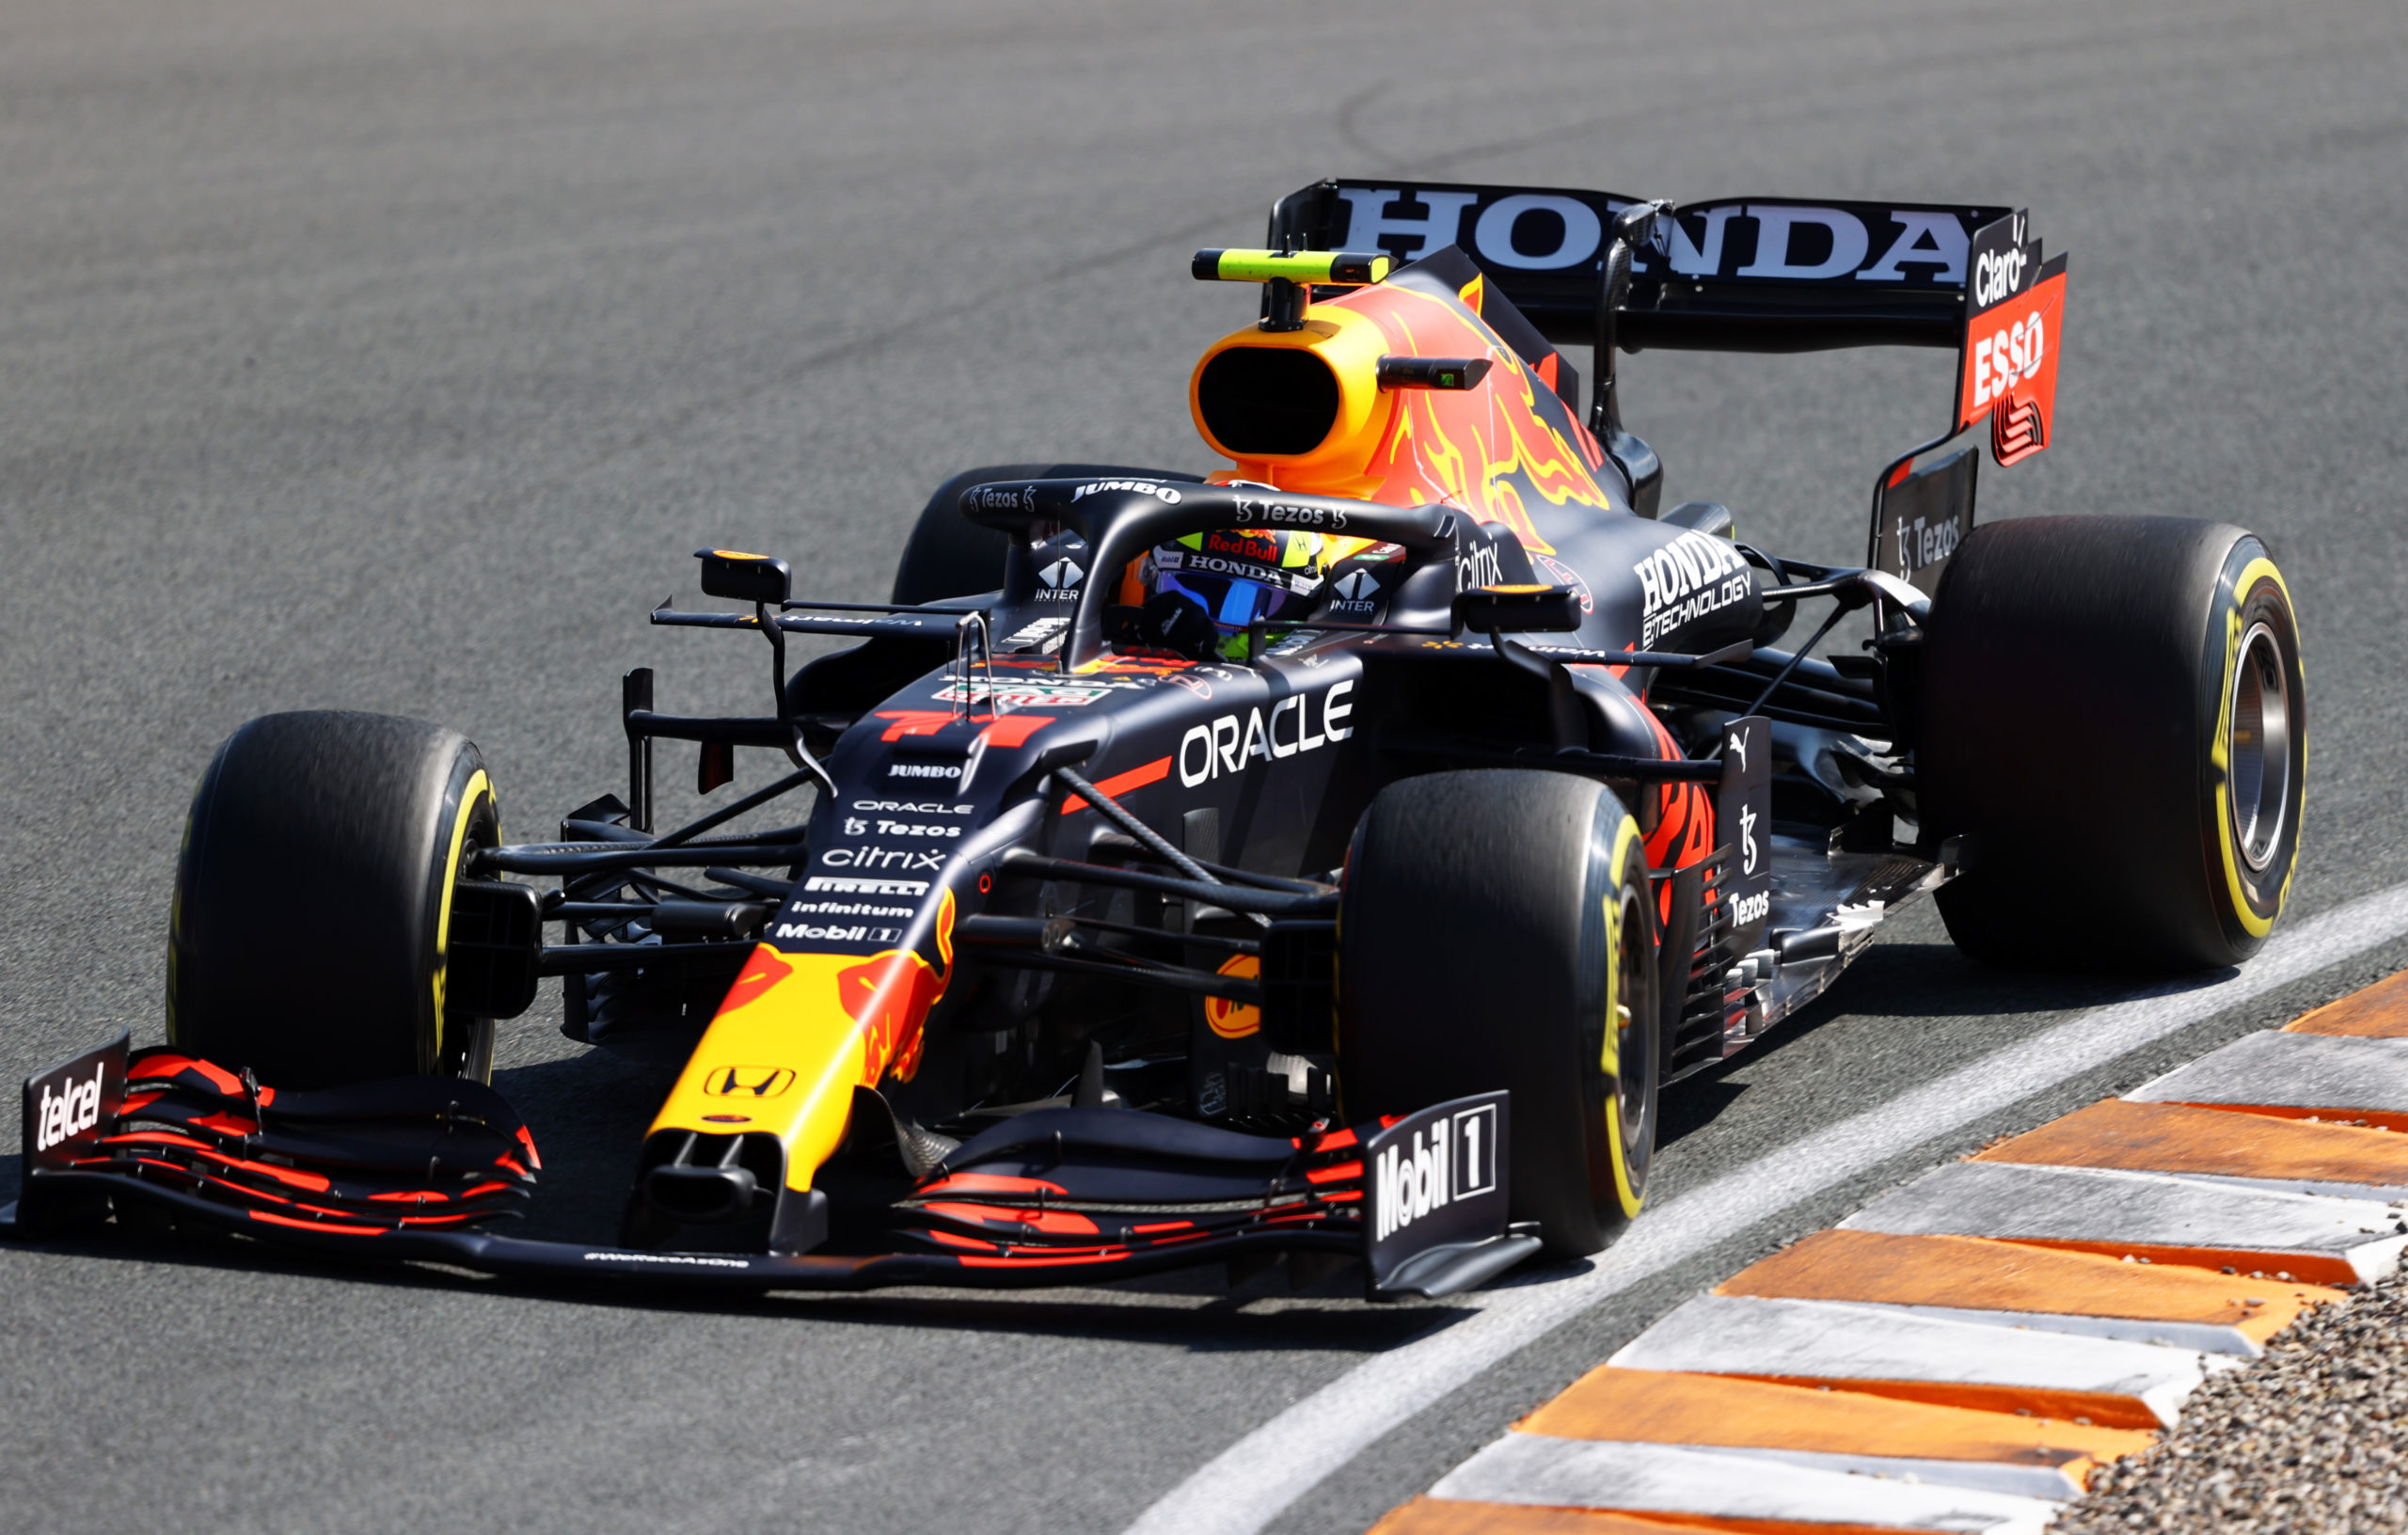 ZANDVOORT, NETHERLANDS - SEPTEMBER 04: Sergio Perez of Mexico driving the (11) Red Bull Racing RB16B Honda during final practice ahead of the F1 Grand Prix of The Netherlands at Circuit Zandvoort on September 04, 2021 in Zandvoort, Netherlands. (Photo by Bryn Lennon/Getty Images) // Getty Images / Red Bull Content Pool  // SI202109040235 // Usage for editorial use only //